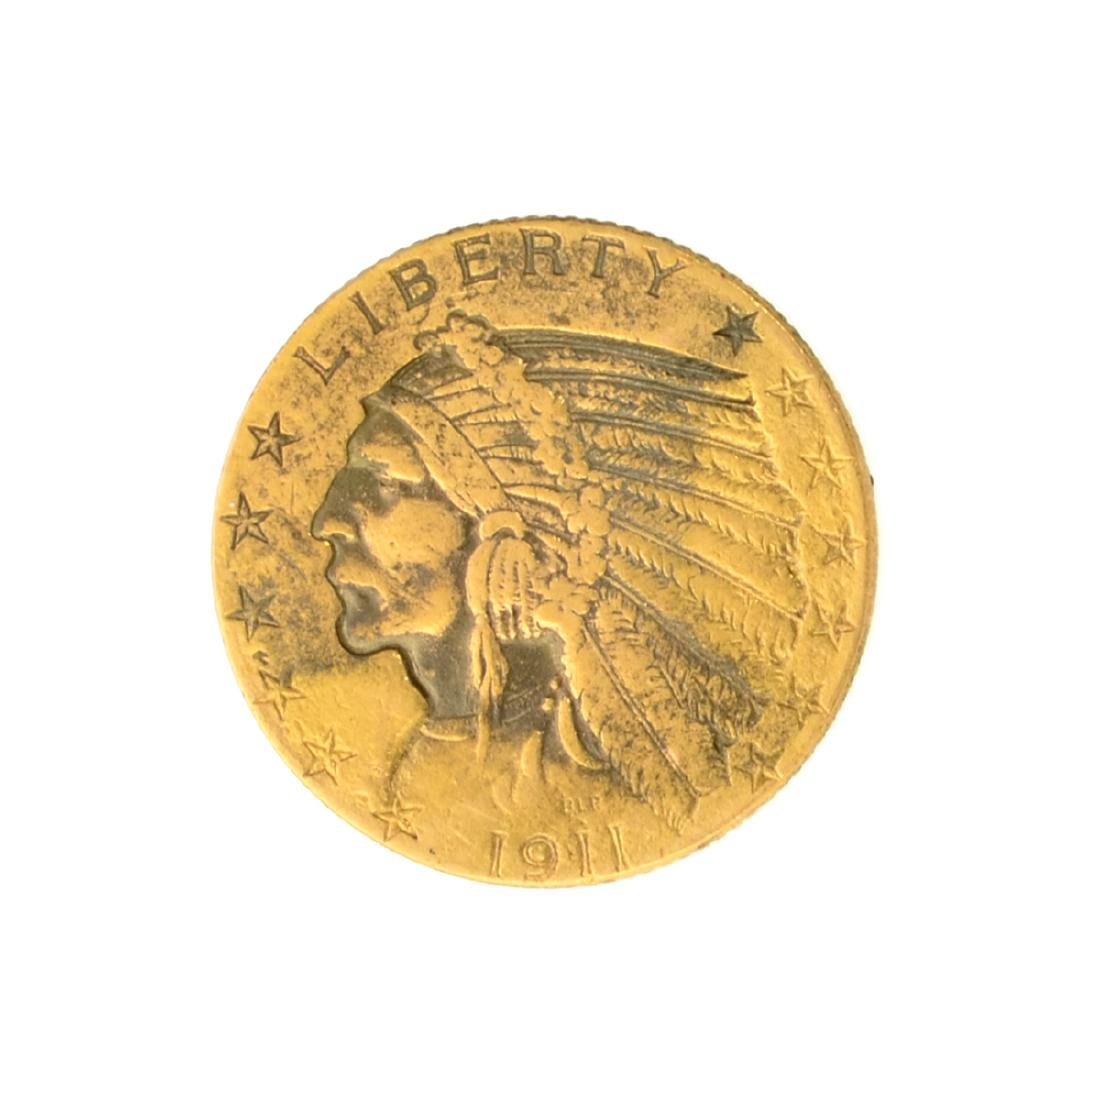 *1911 $5 U.S. Indian Head Gold Coin - Great Investment